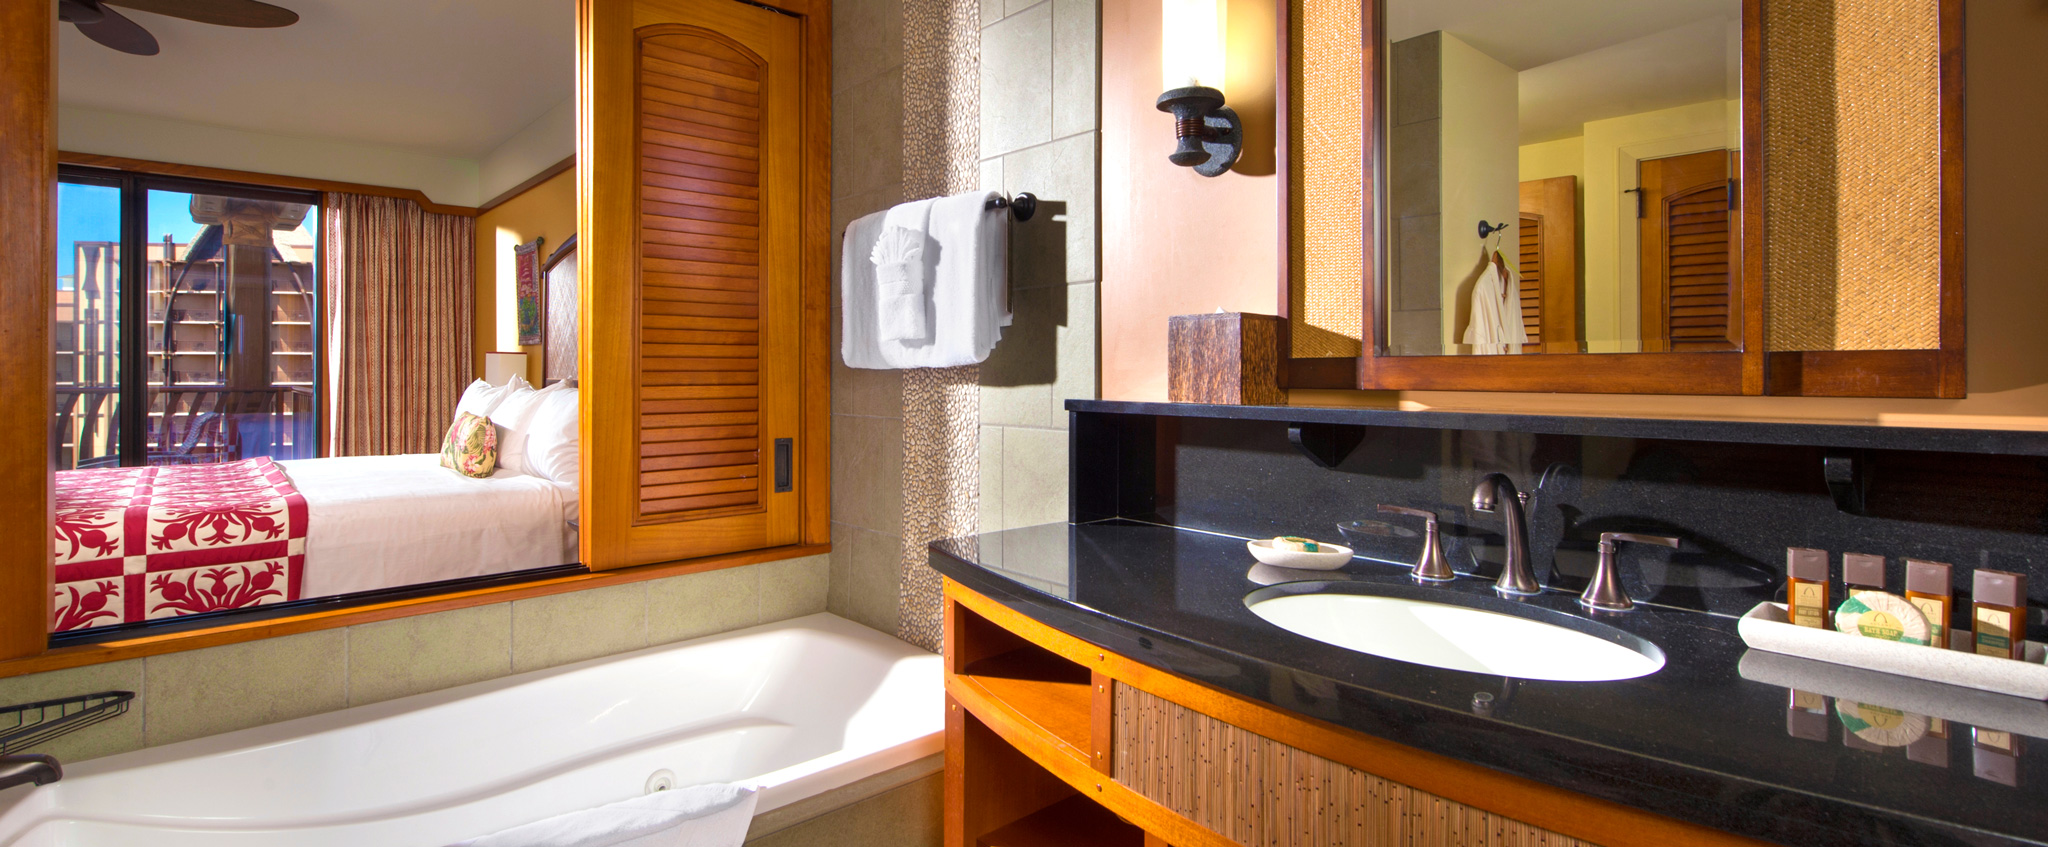 The bathroom of the 1-Bedroom Villa has a dark granite countertop and a bathtub with view of the bedroom